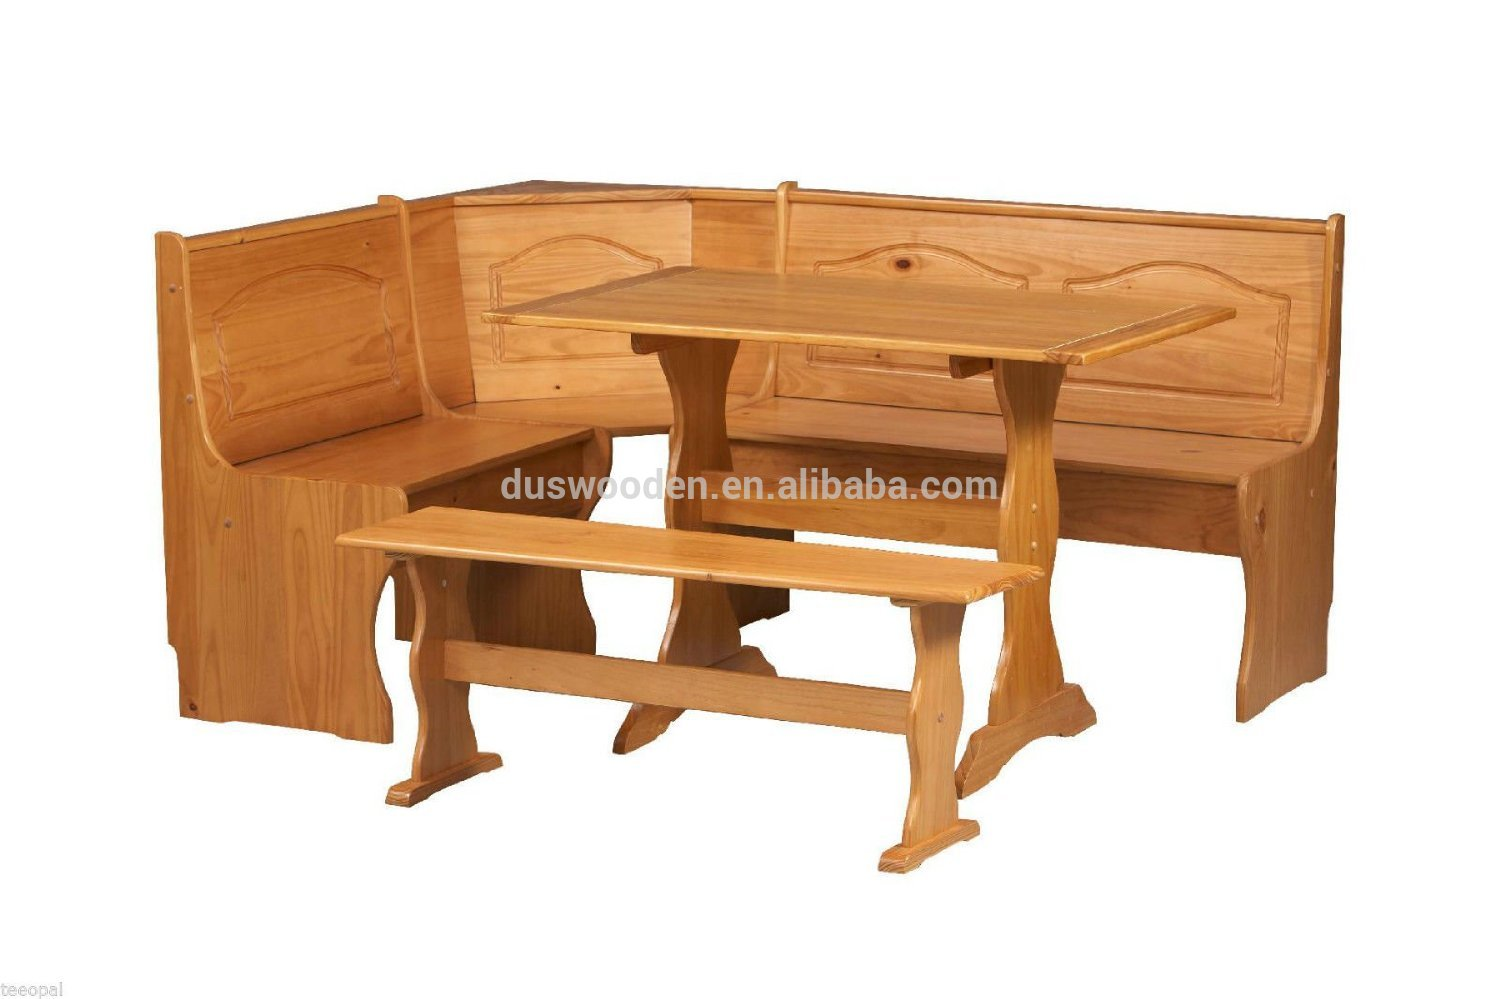 Solid Wood Kids Dining Table And Chair View Dining Table And Chair